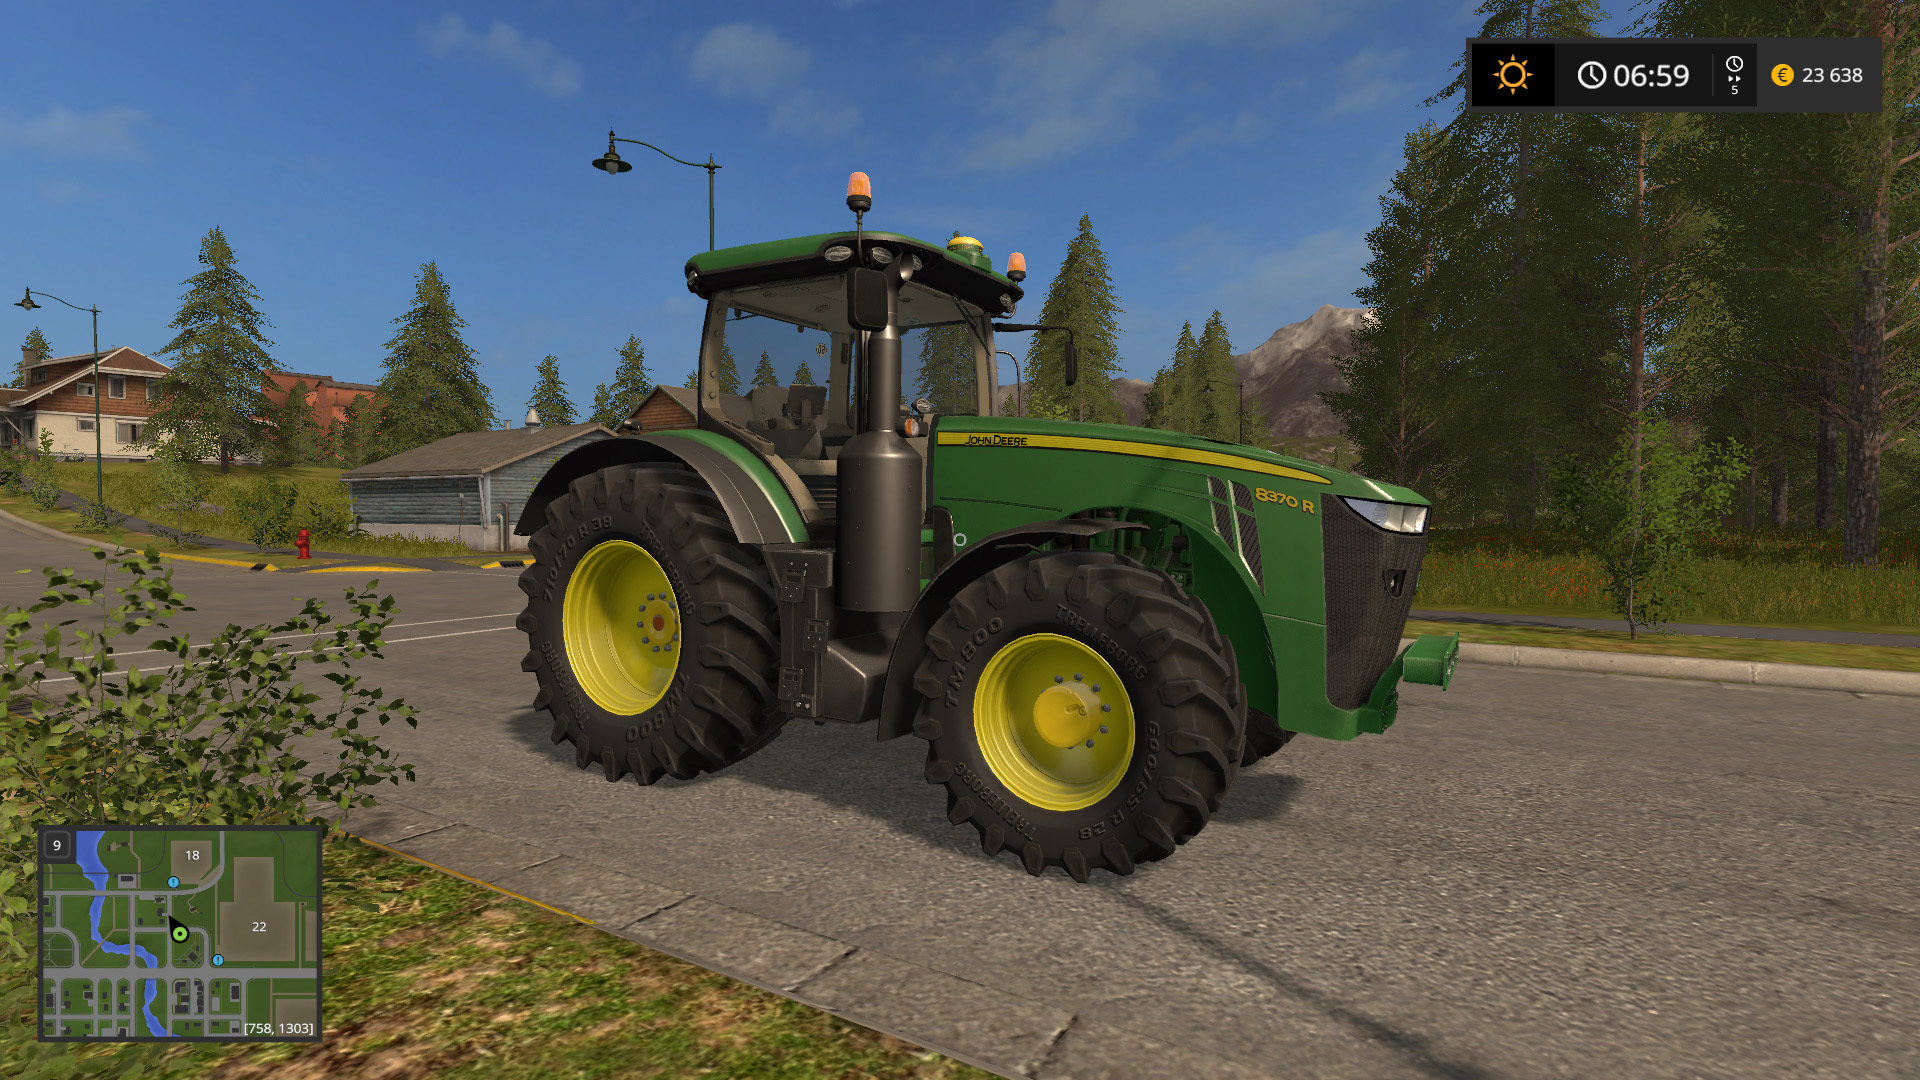 john deere tractor game free download for pc